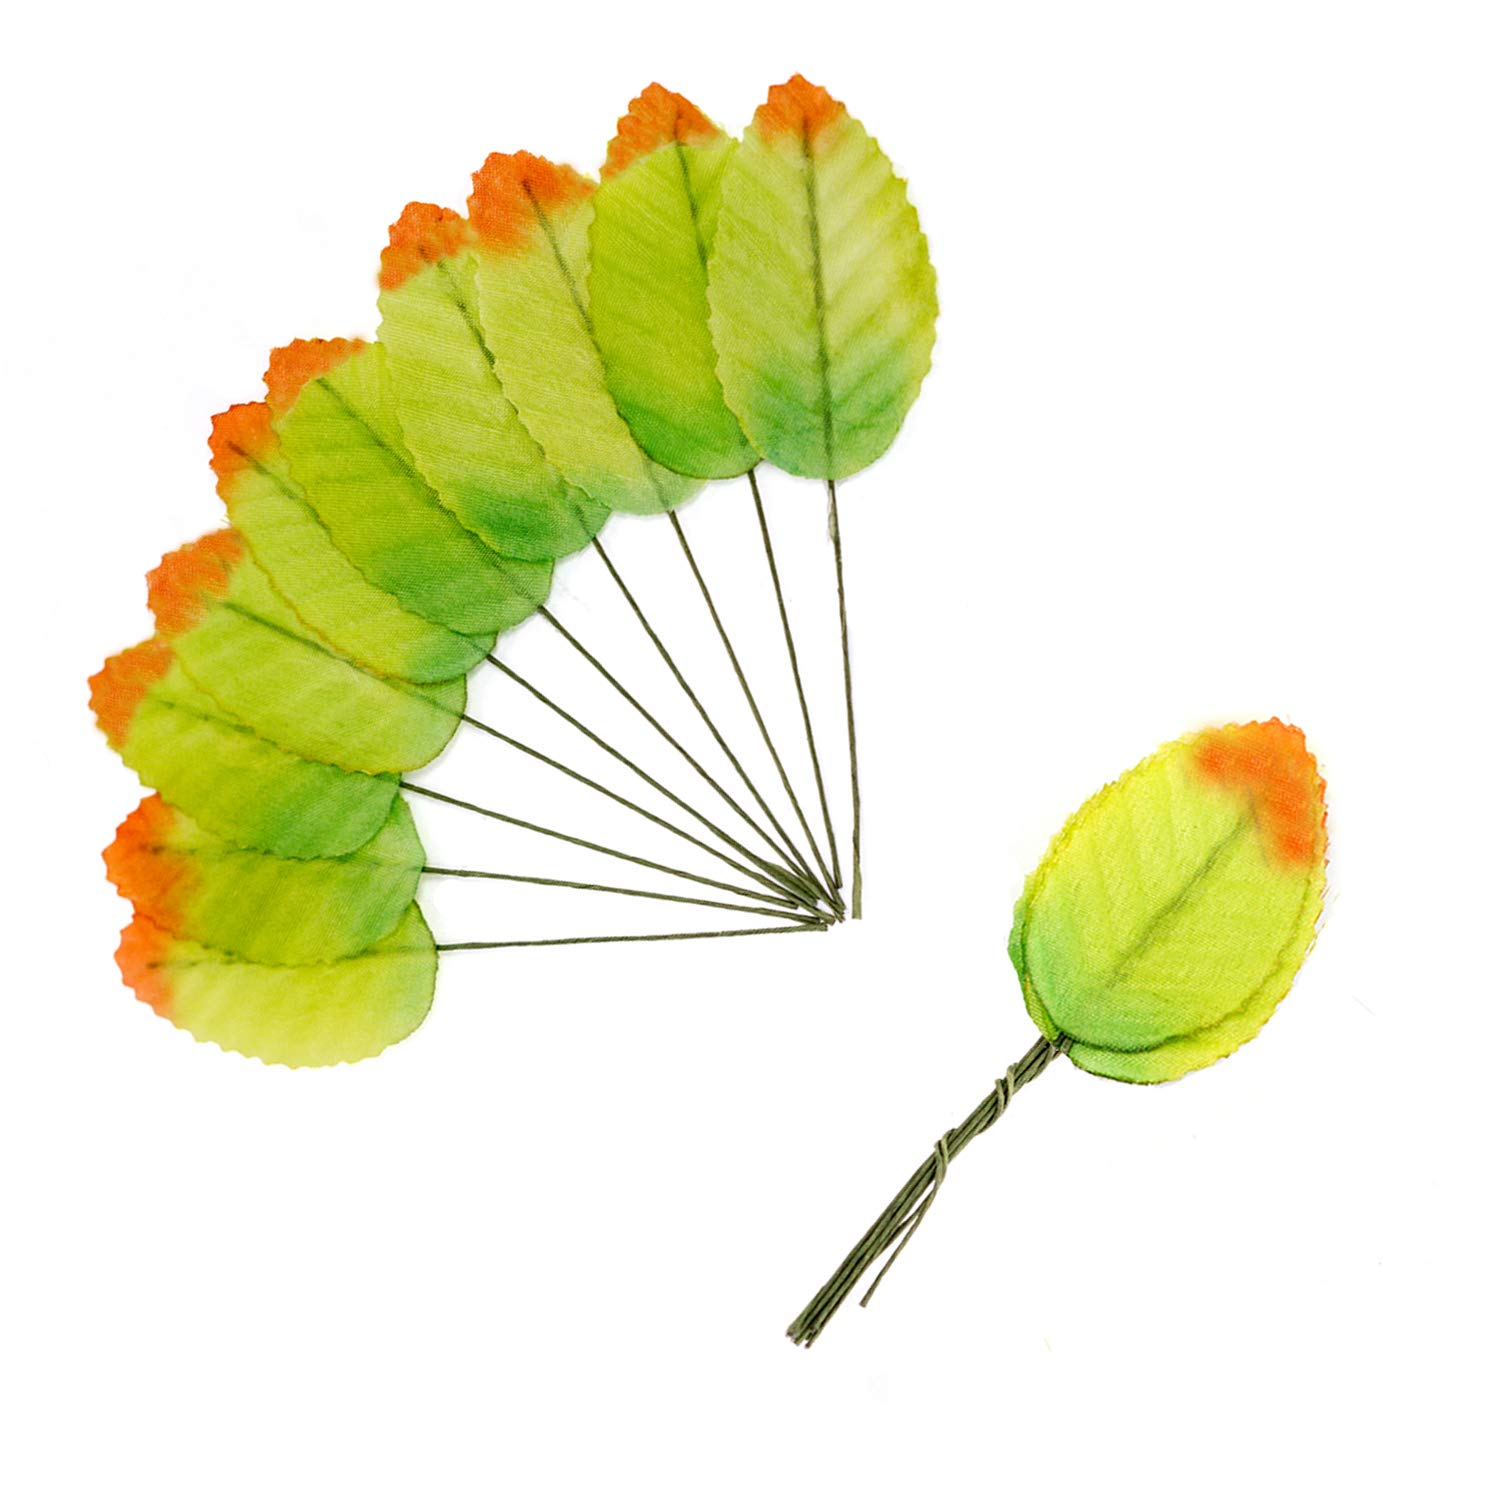 D-buy 200 Pcs Silk Leaf Artificial Leaves, for Wedding Decor, DIY Home Decorative, Christmas Party Decoration, DIY Wreath Gift Scrapbooking, Craft Fake Flower Supplies (FluorescentGreen)